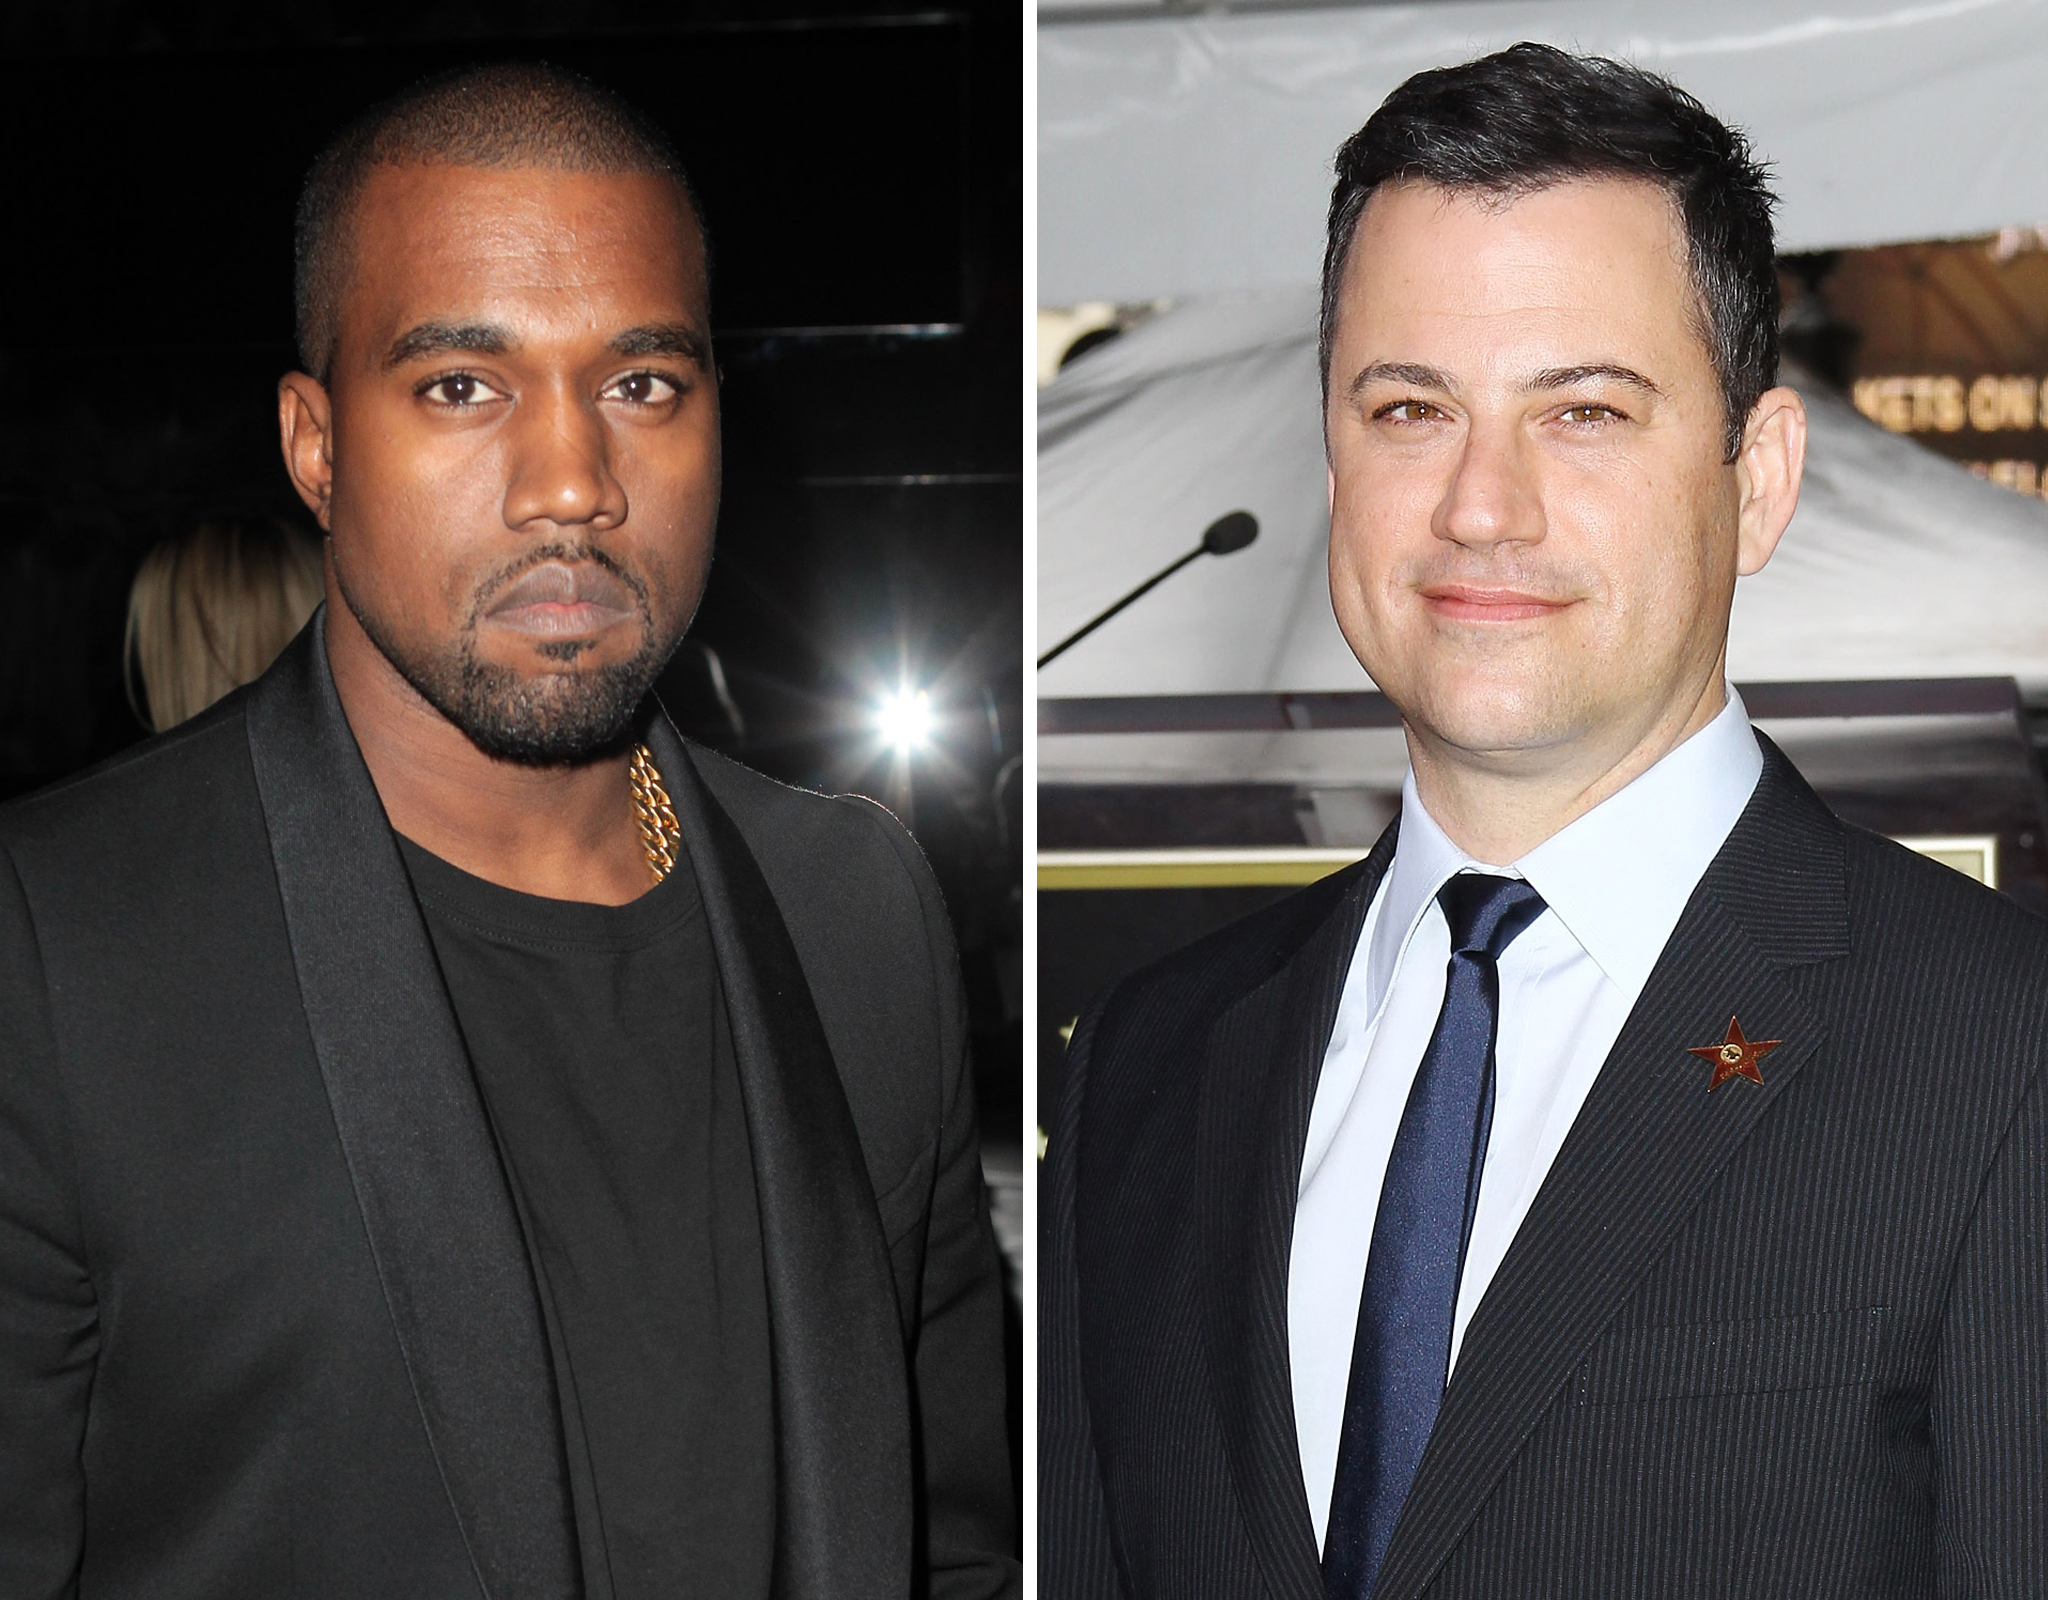 Kanye West and Jimmy Kimmel (WireImage/FilmMagic)